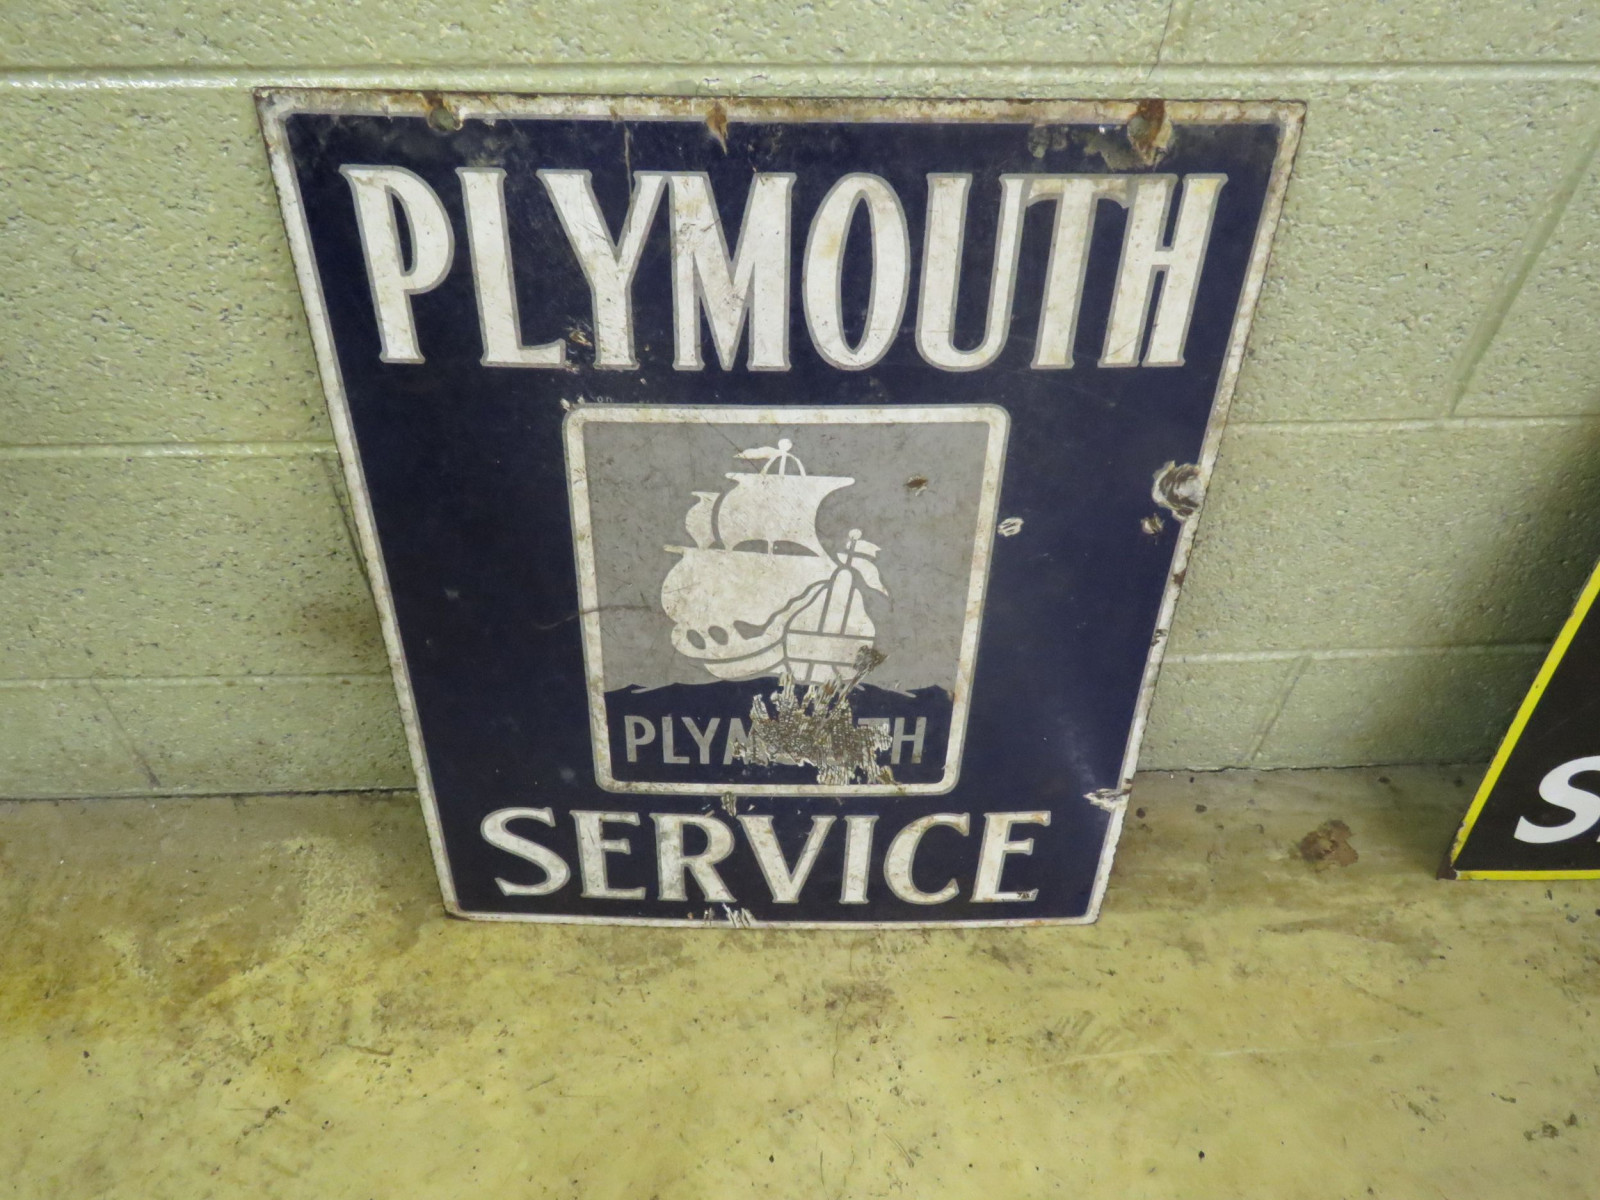 Plymouth Service Porcelain Sign - Image 2